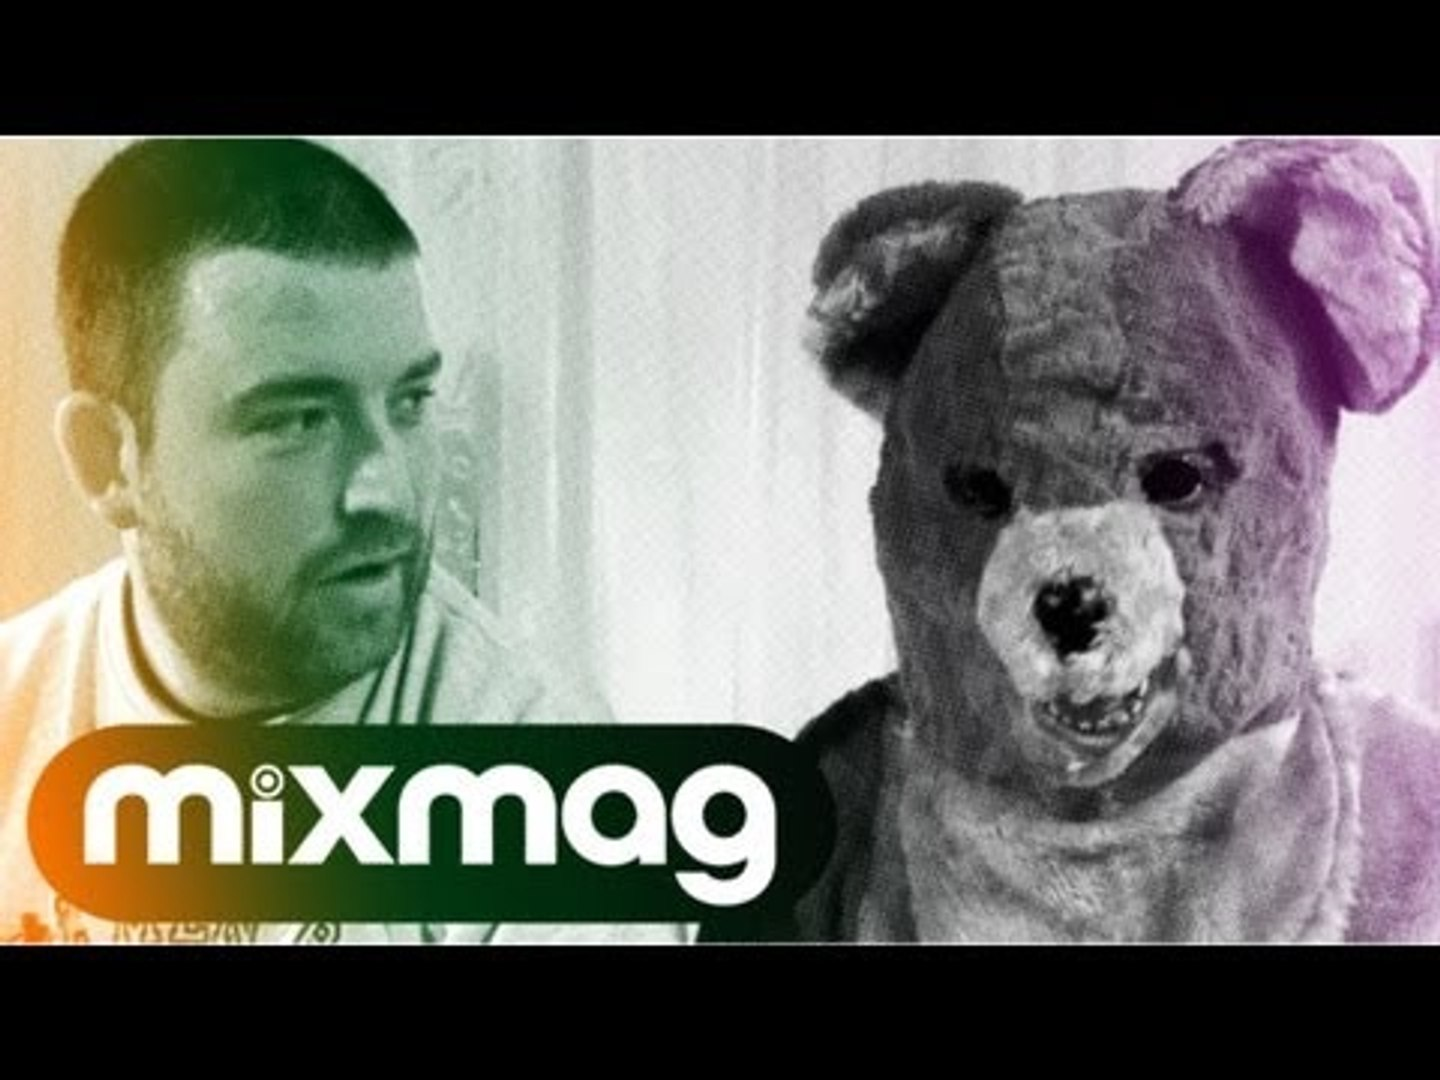 DERRICK CARTER is the Greatest DJ Of All Time... by RAF RUNDELL of TWO BEARS